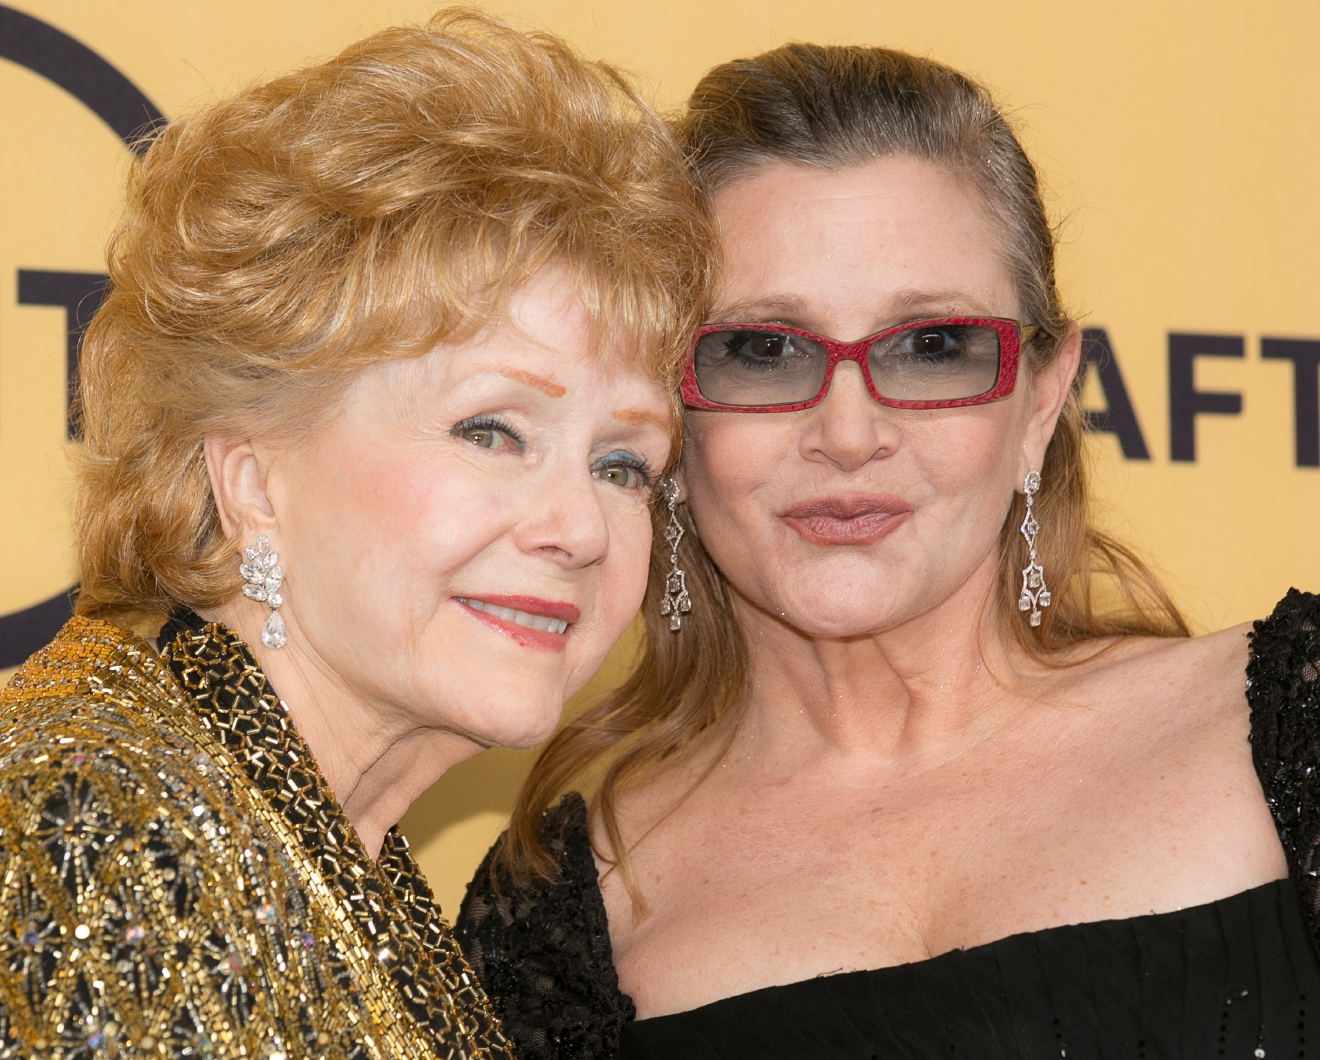 21st Annual SAG Awards - Press Room at Los Angeles Shrine Exposition Center  Featuring: Debbie Reynolds, Carrie Fisher Where: Los Angeles, California, United States When: 22 Jan 2015 Credit: Brian To/WENN.com